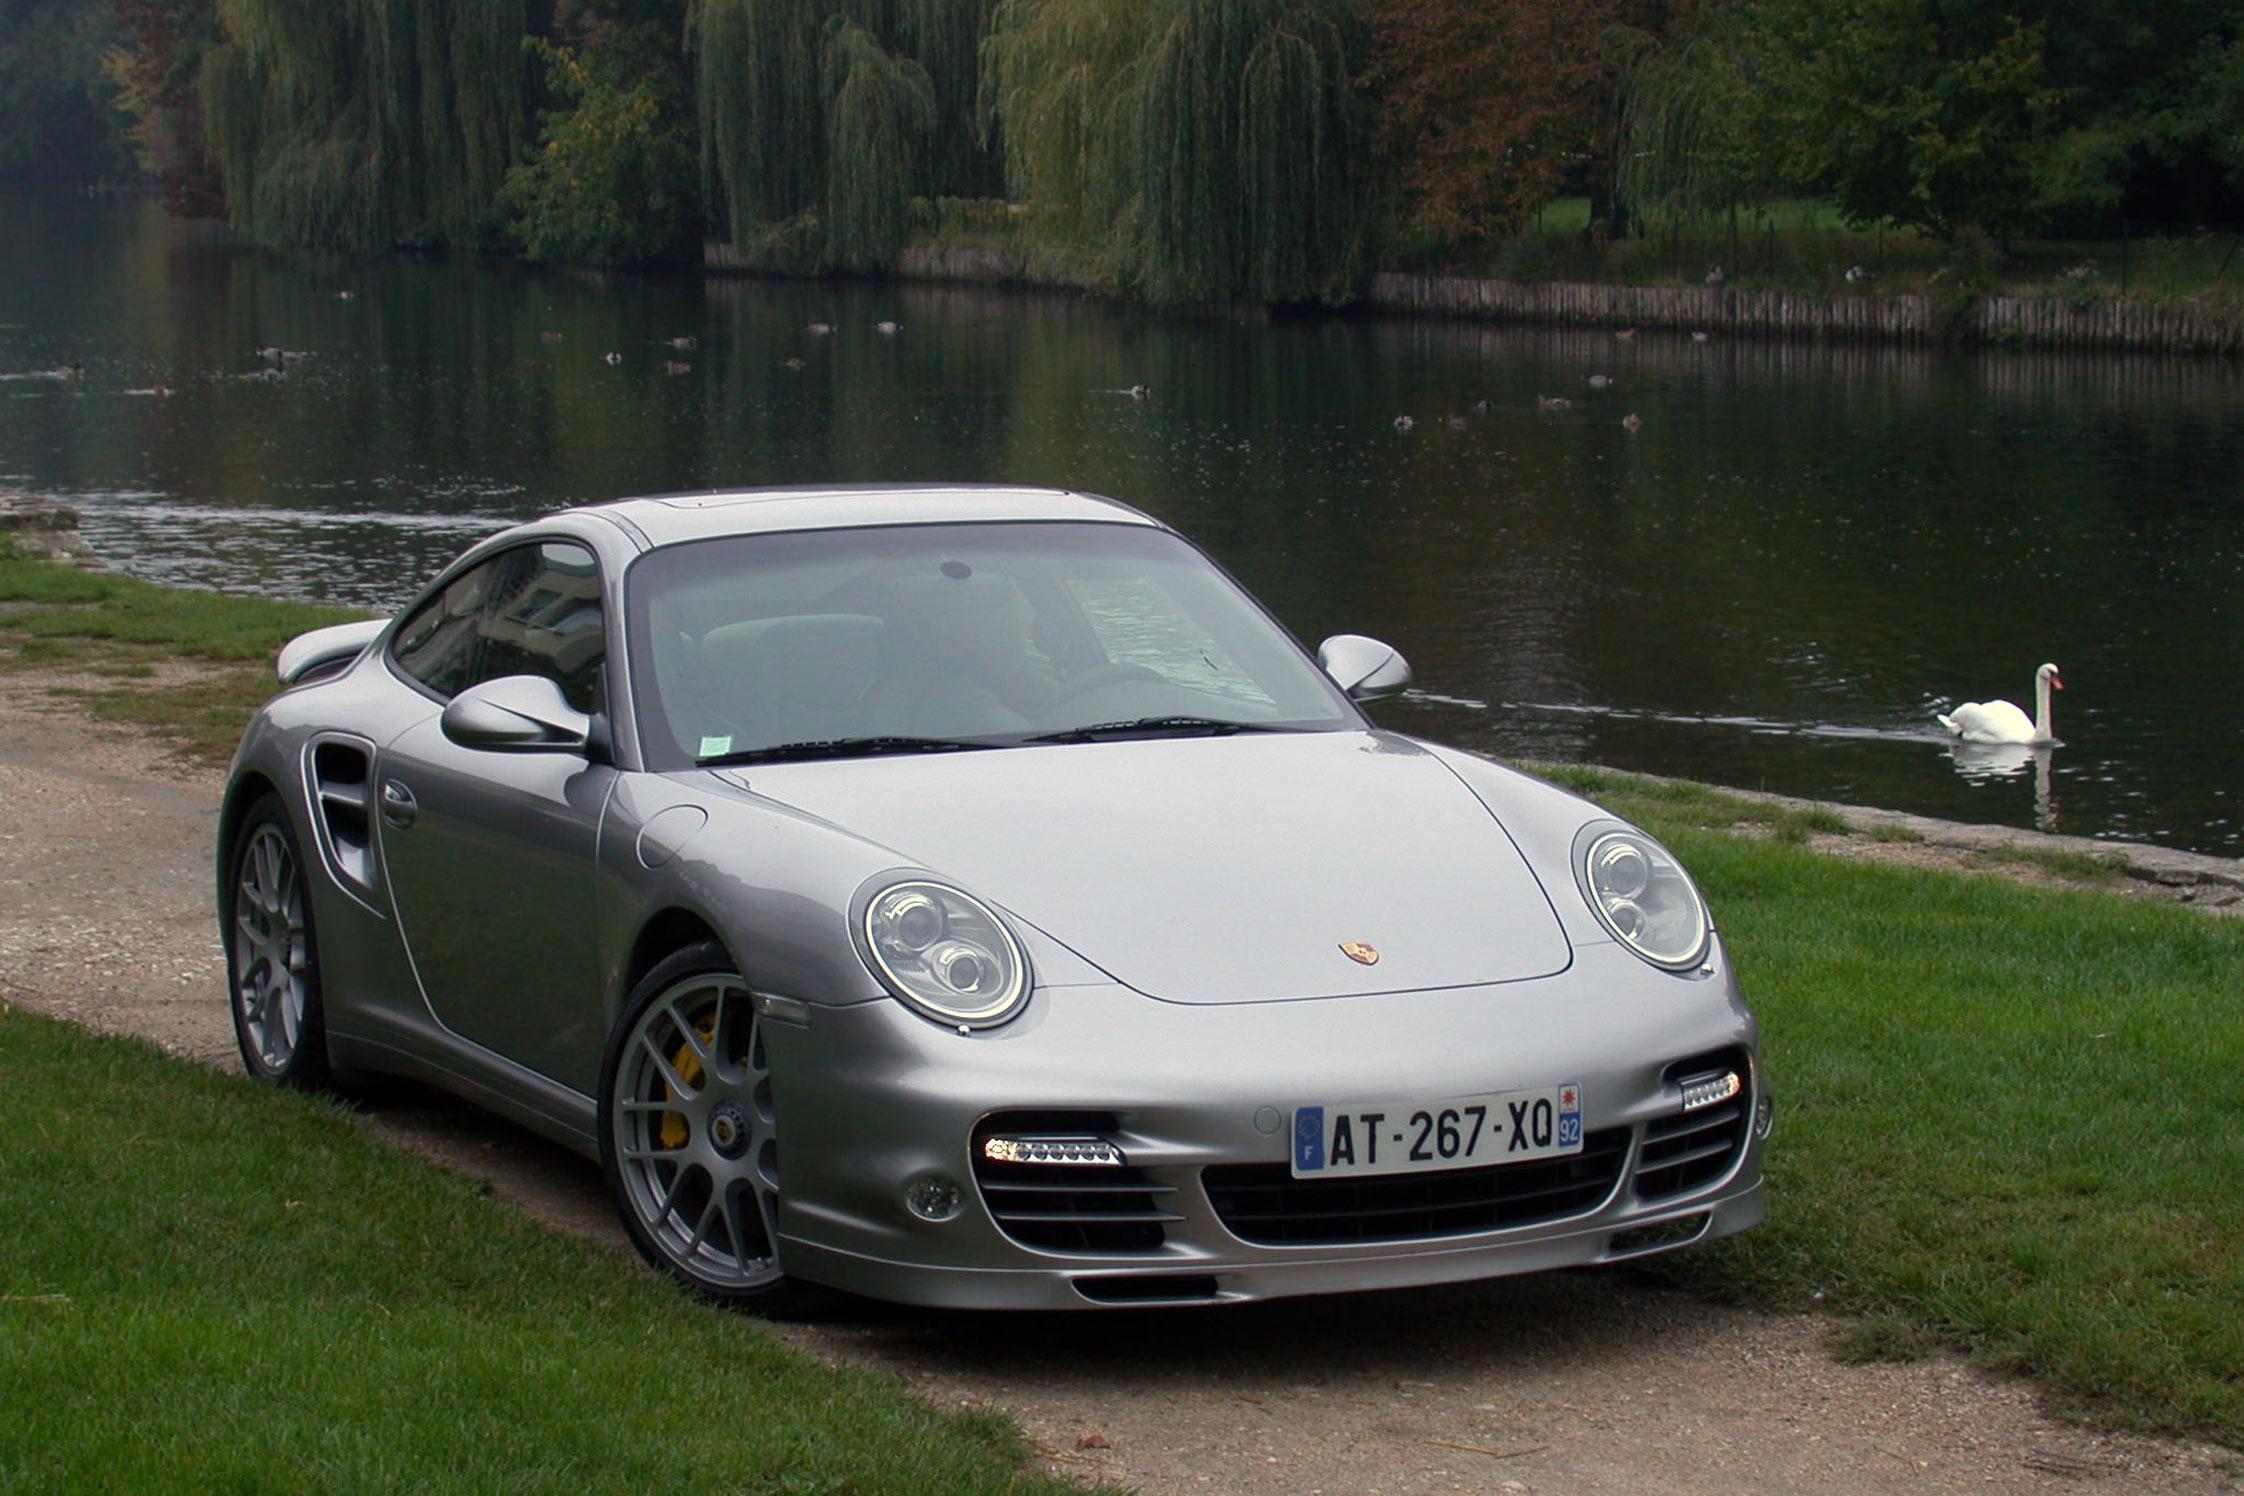 essai porsche 911 turbo s motorlegend. Black Bedroom Furniture Sets. Home Design Ideas